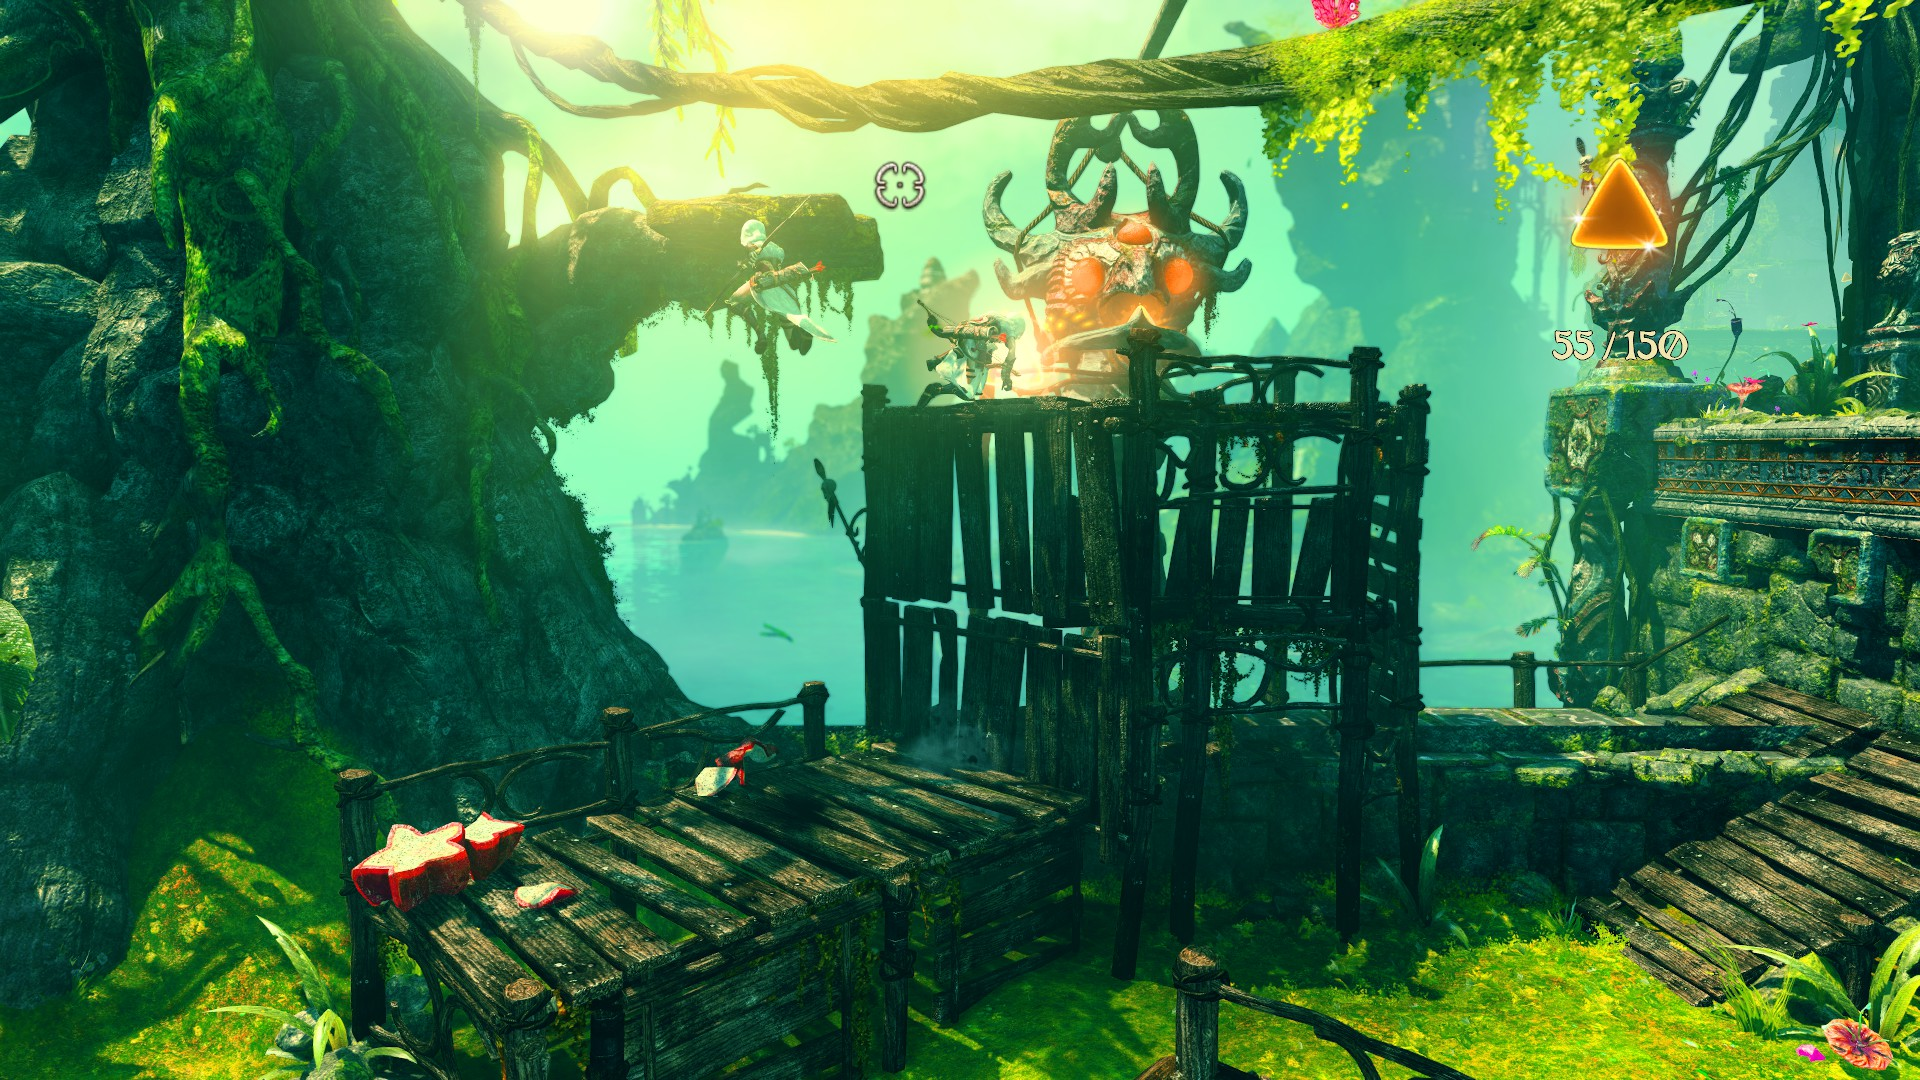 Steam Game Giveaway Trine 2 Sci Fi And Fantasy Network